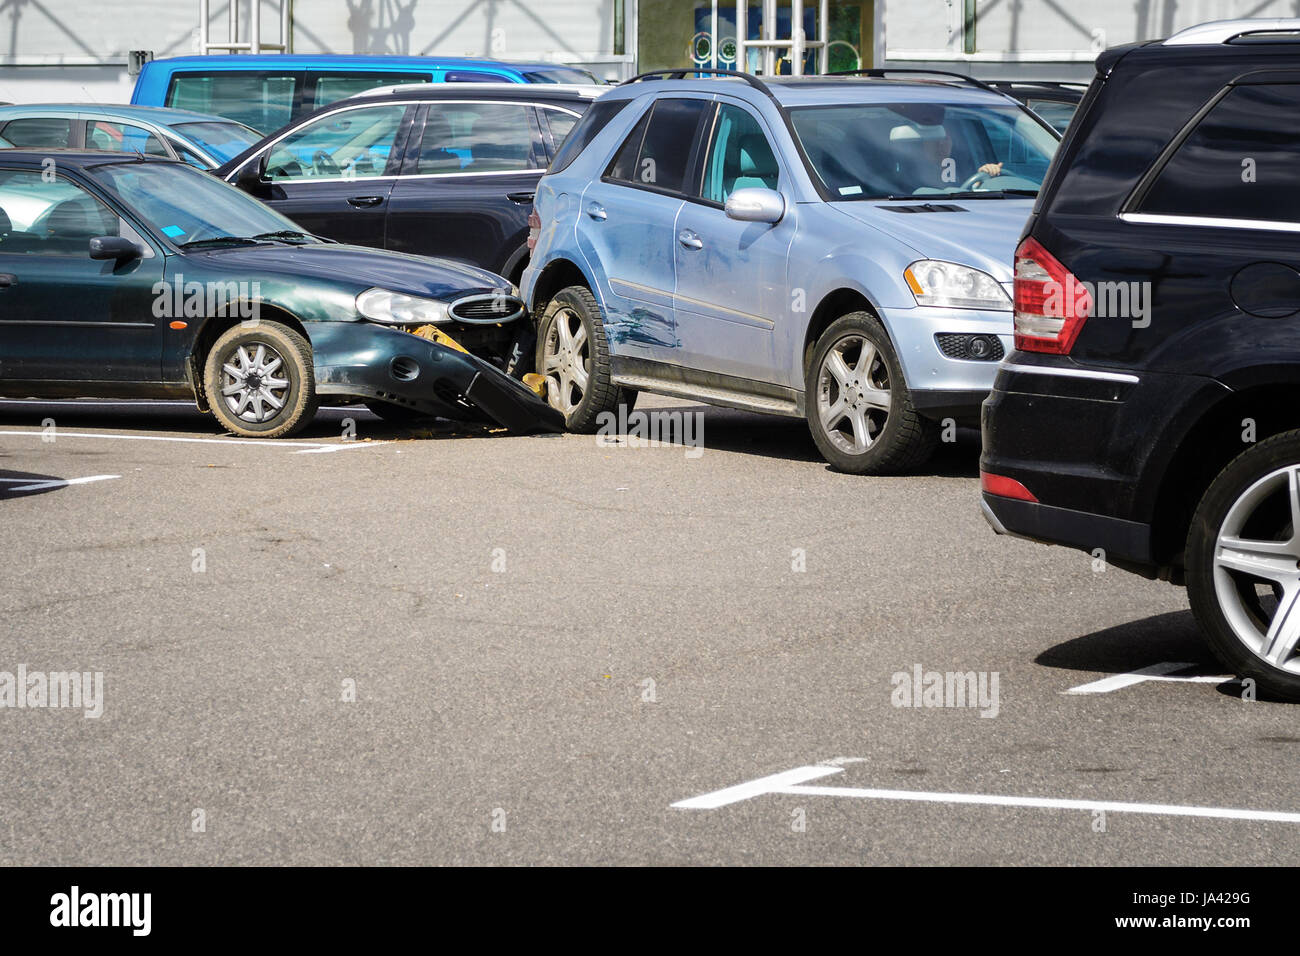 Car accident in the parking lot. Inattention behind the wheel concept - Stock Image